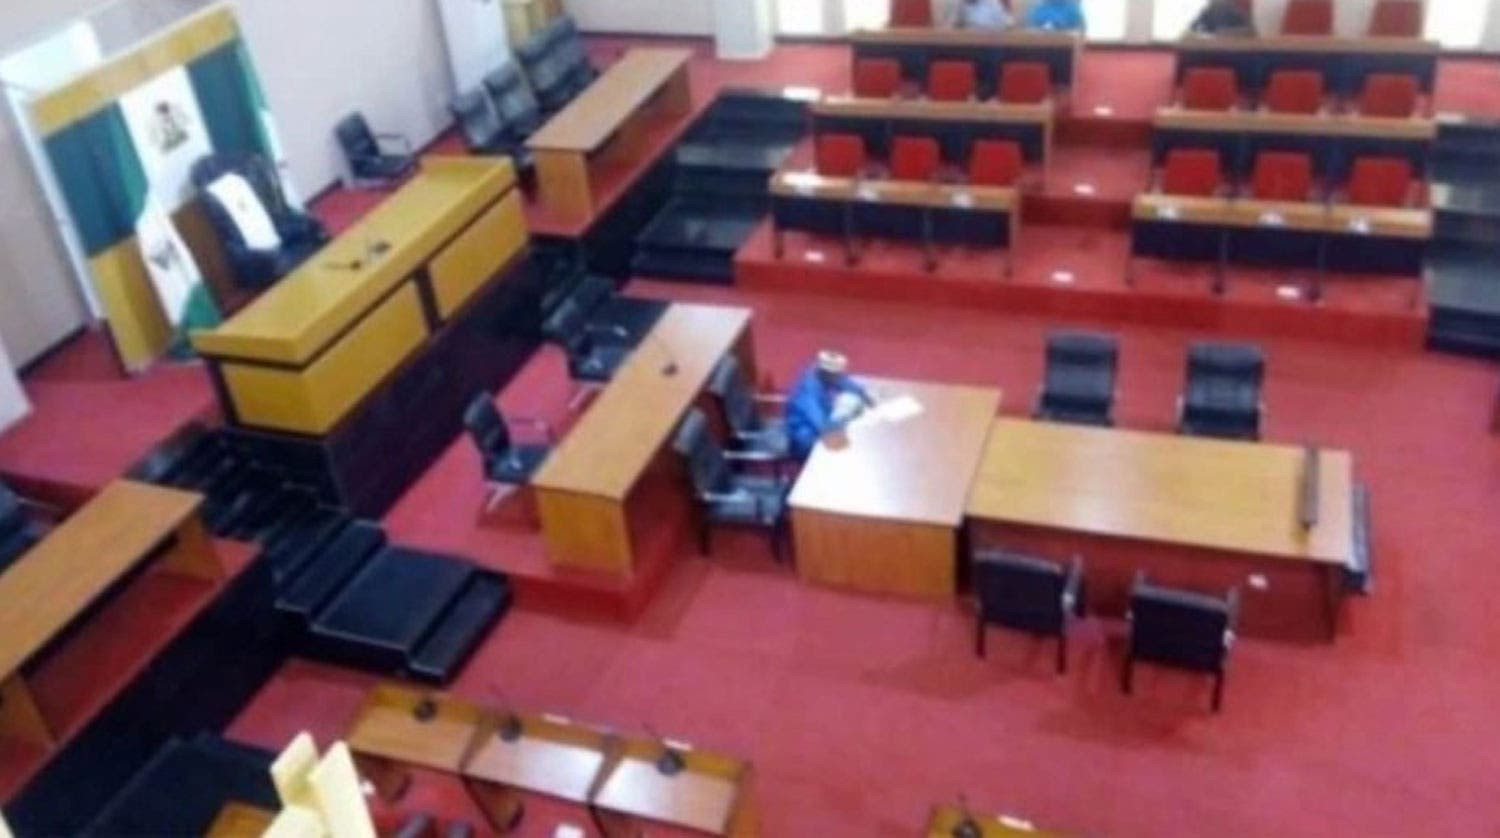 Bauchi Assembly declares murdered lawmaker's seat vacant